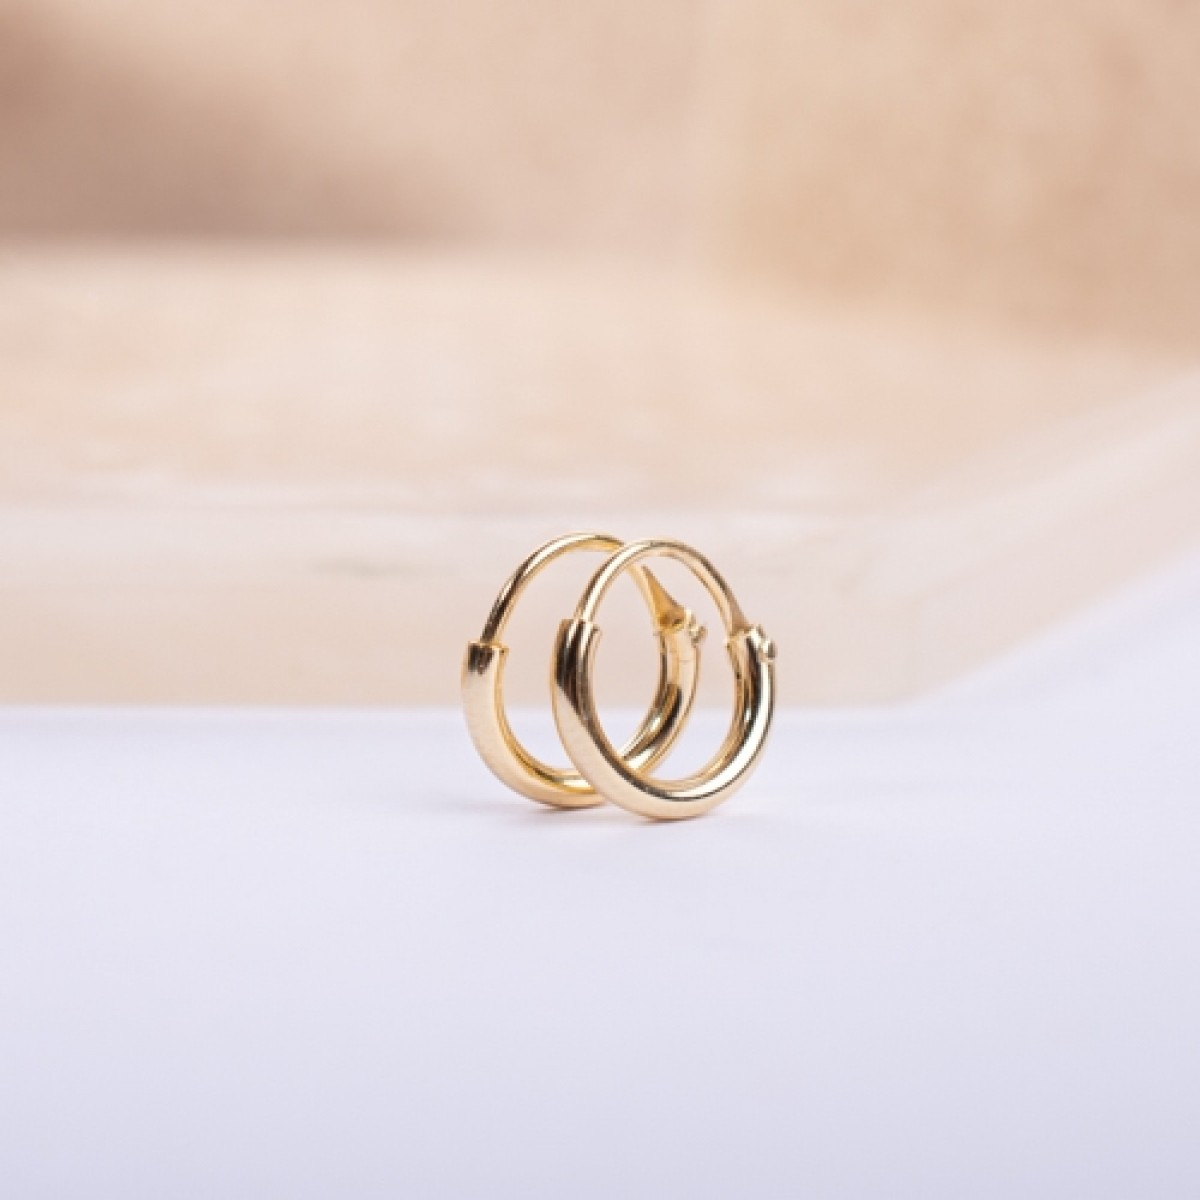 Gold-Plated Silver Hoop Earring 1cm